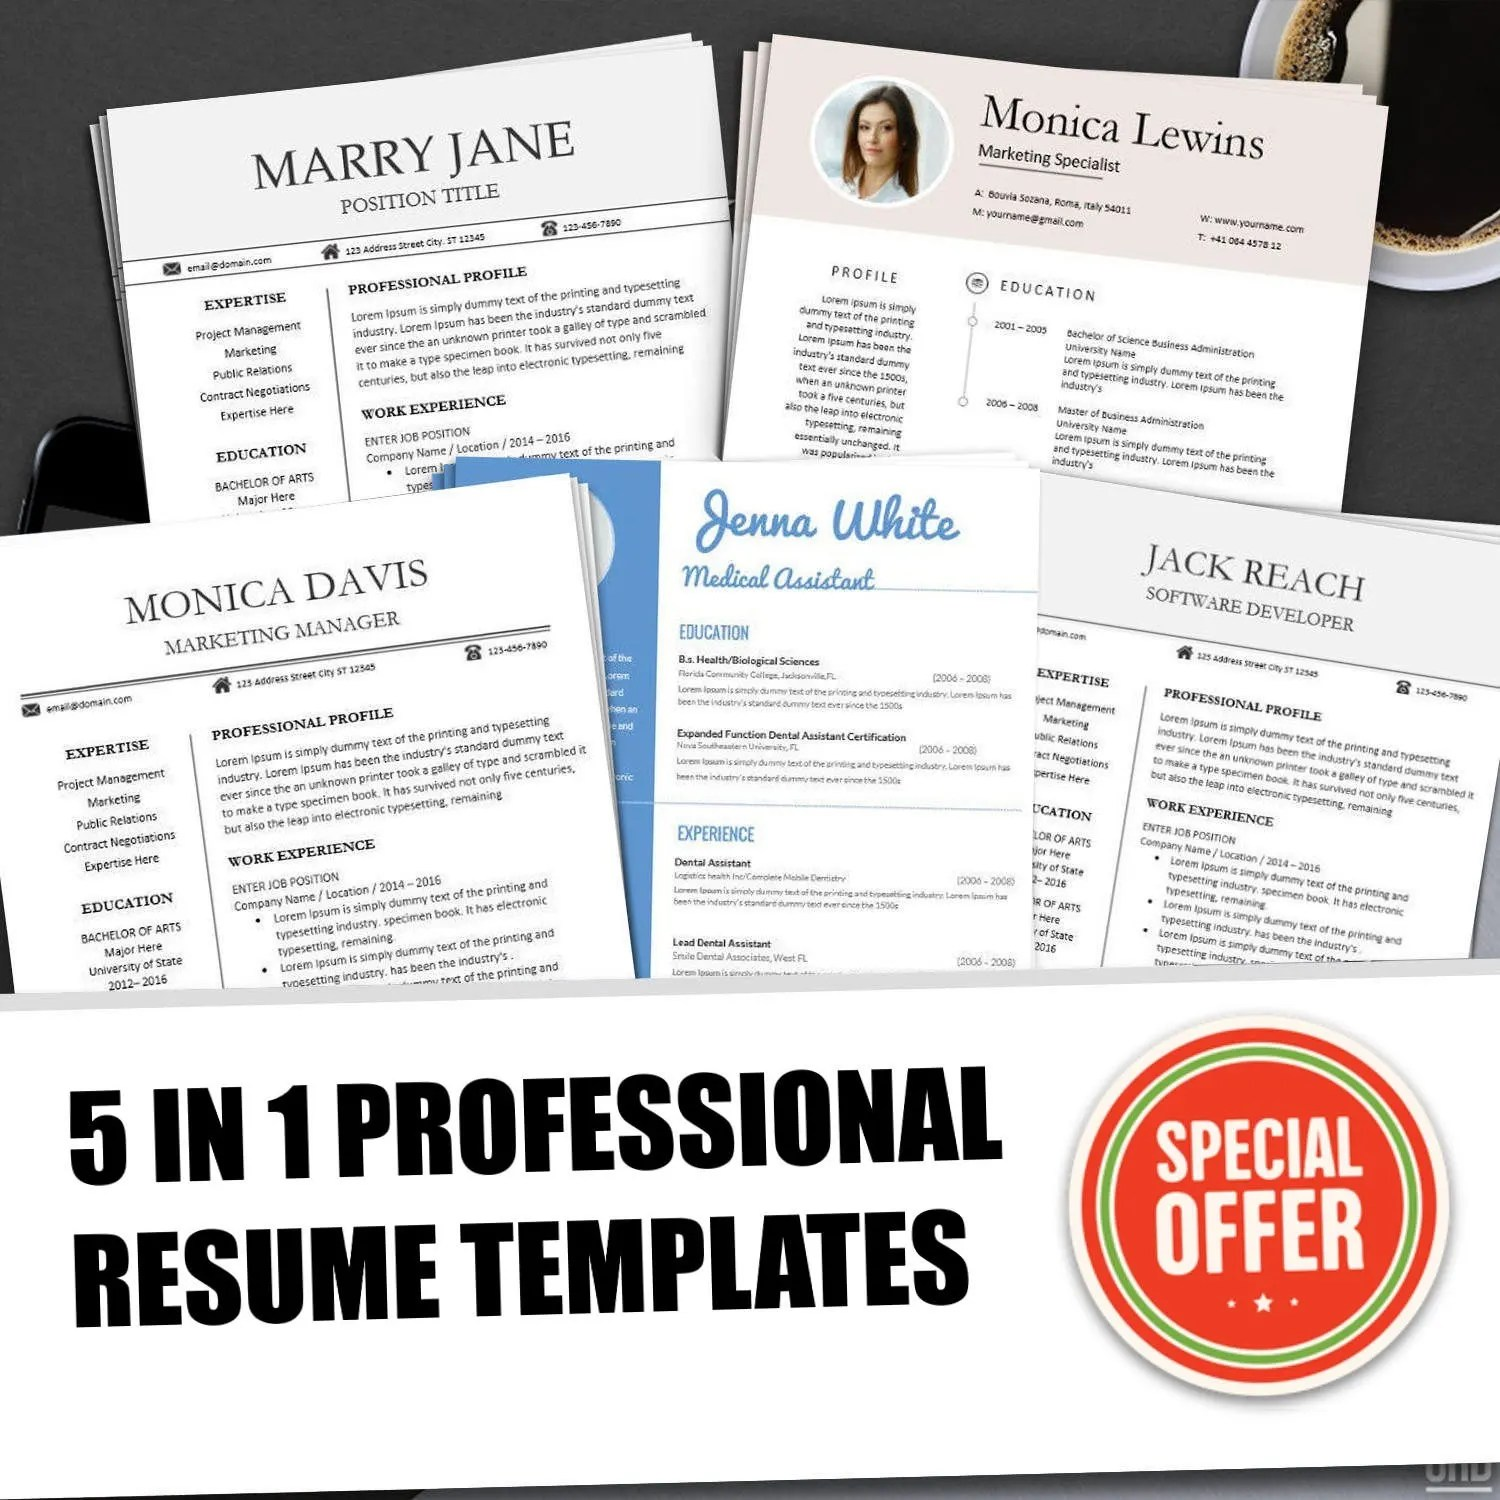 Resume Templates BUNDLE for Ms Word Professional Resume Etsy